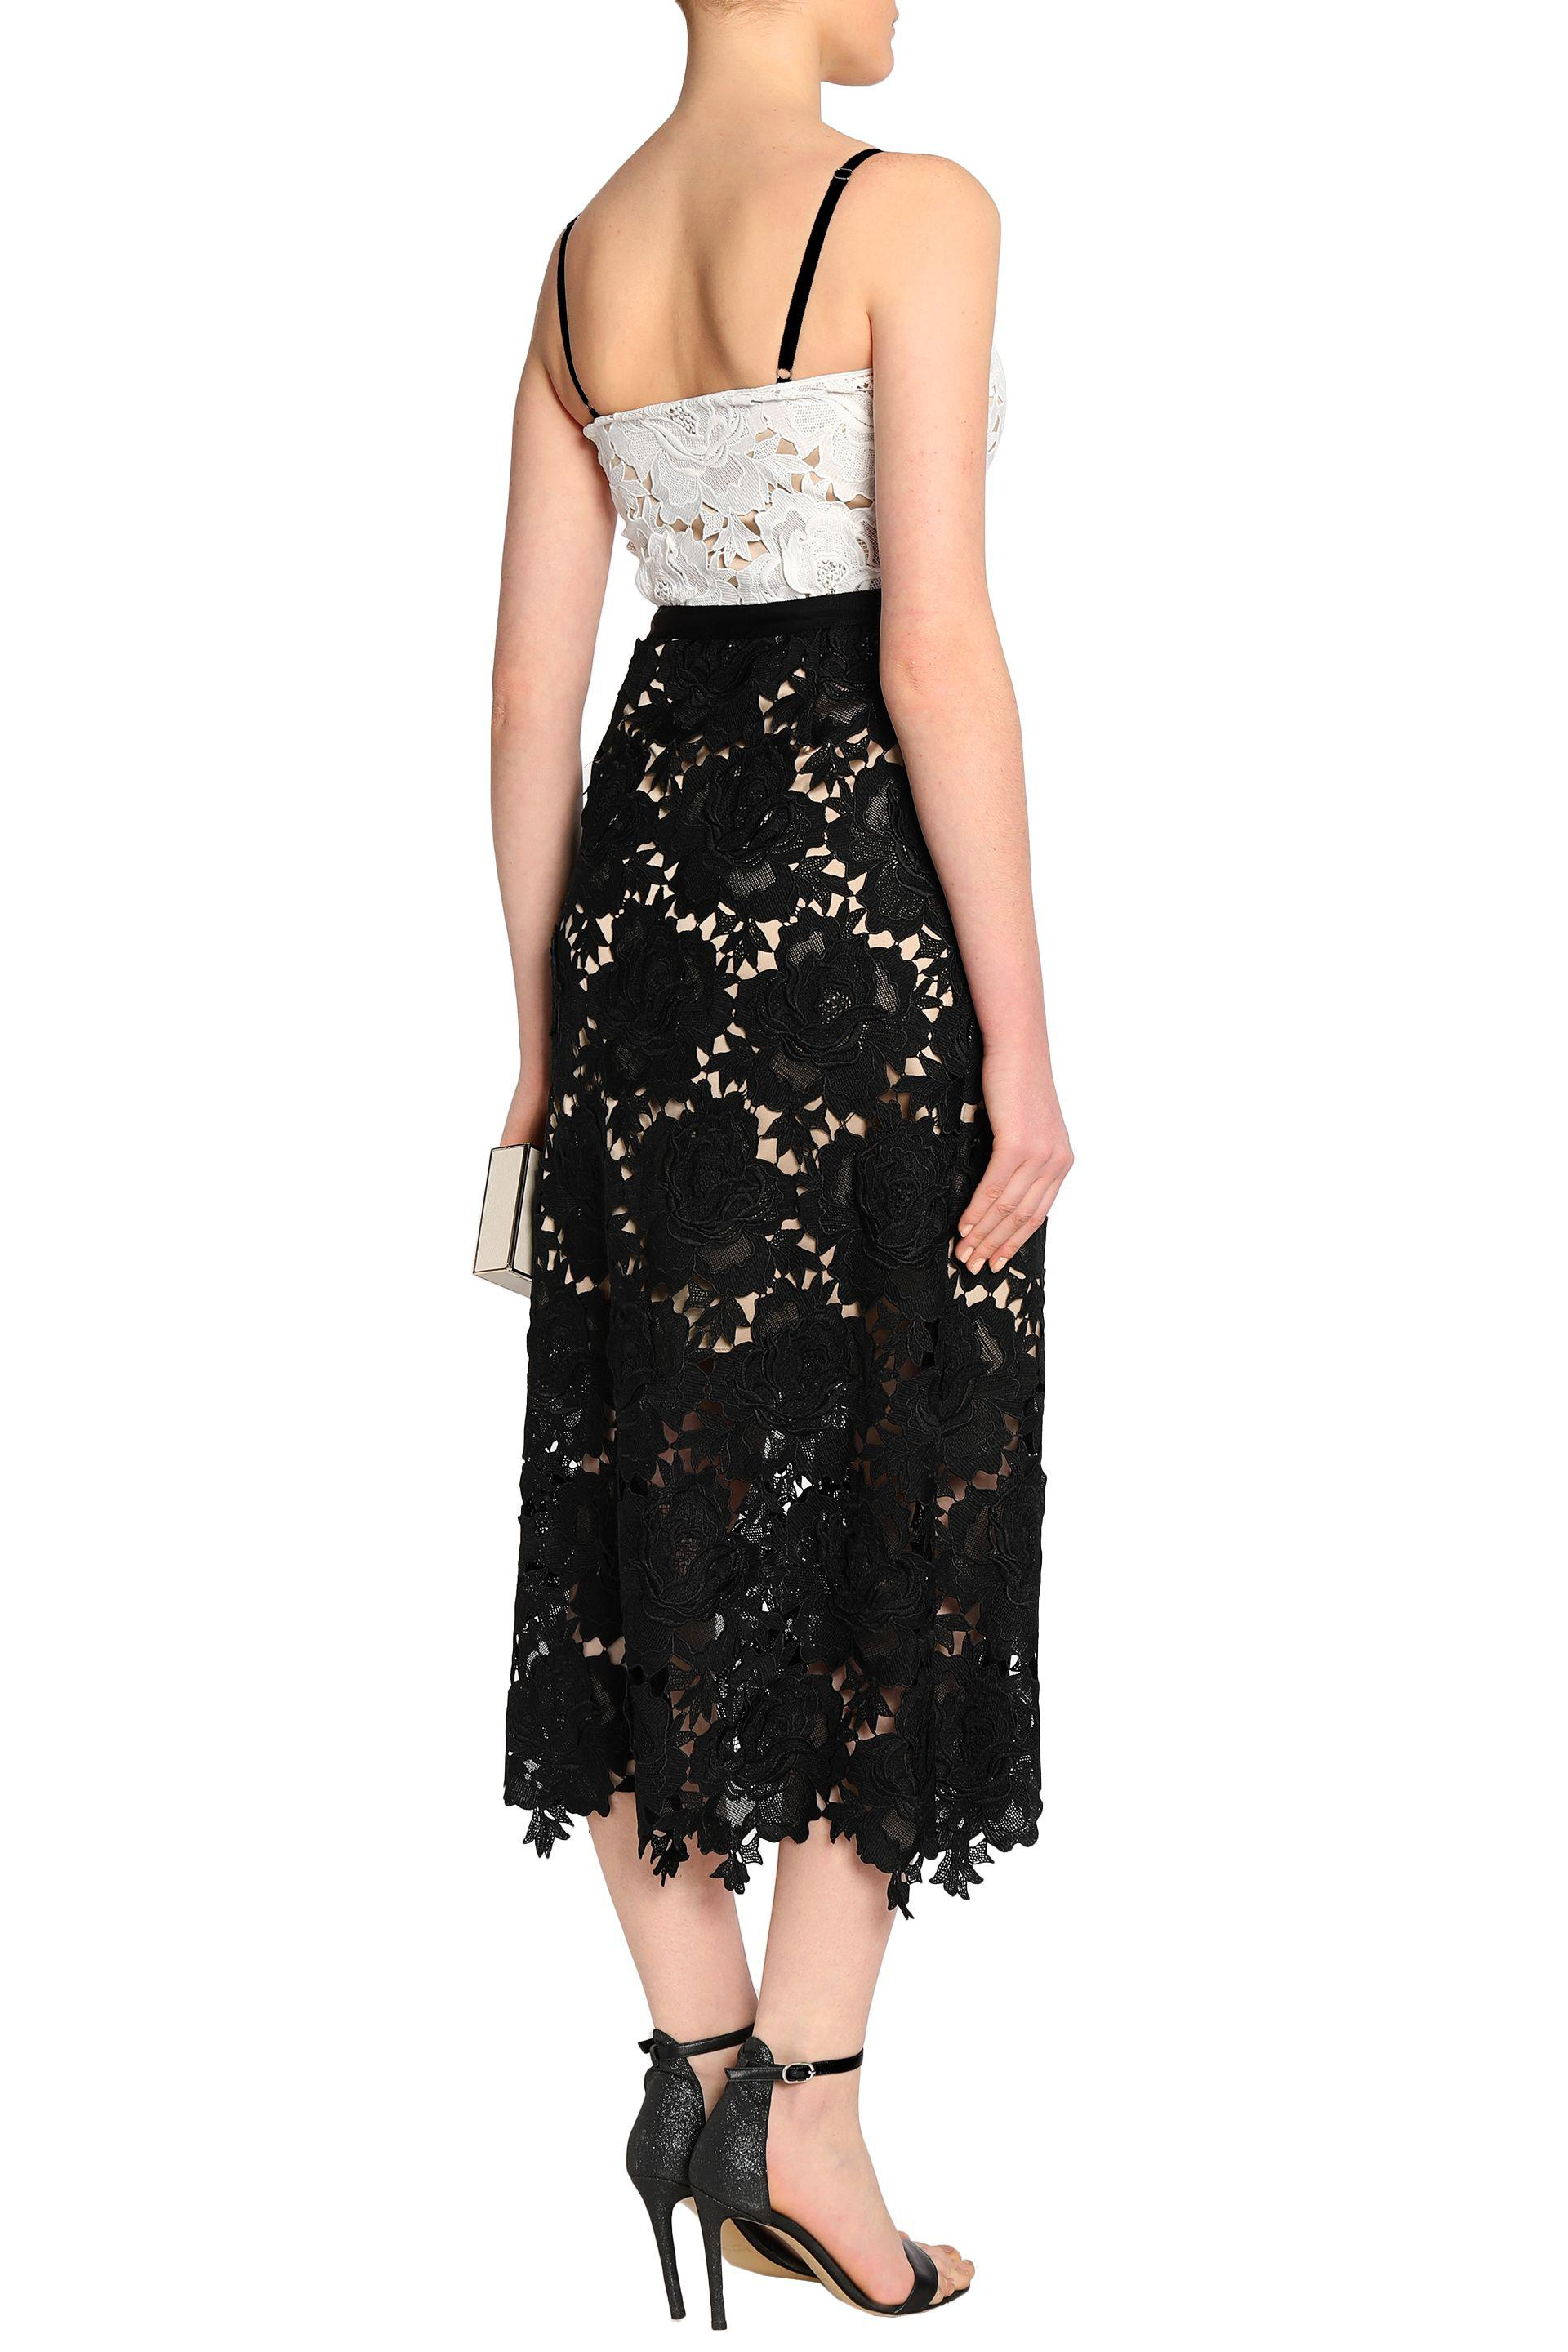 a9f73210c574 Lyst - Catherine Deane Frida Two-tone Guipure Lace Midi Dress in Black